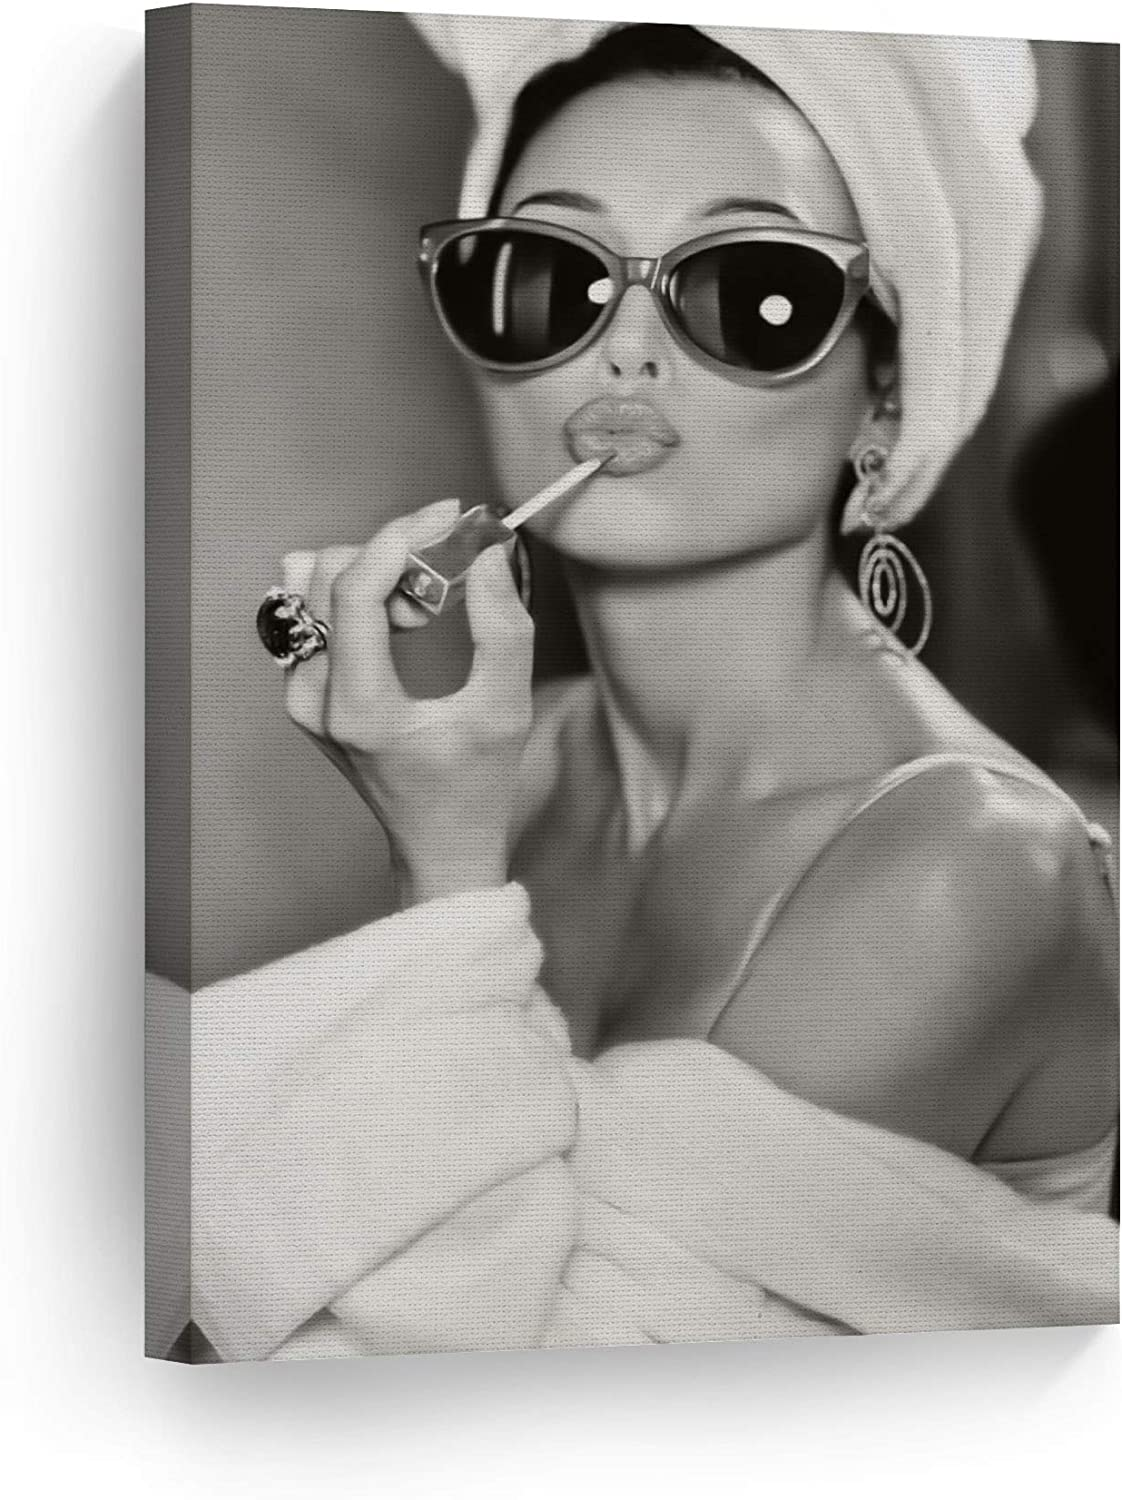 Smile Art Design Audrey Hepburn Wall Art Canvas Print Lipstick Makeup Iconic Pop Art Beauty Black and White Wall Art Living Room Bedroom Wall Decor Vintage Ready to Hang Made in USA - 12x8